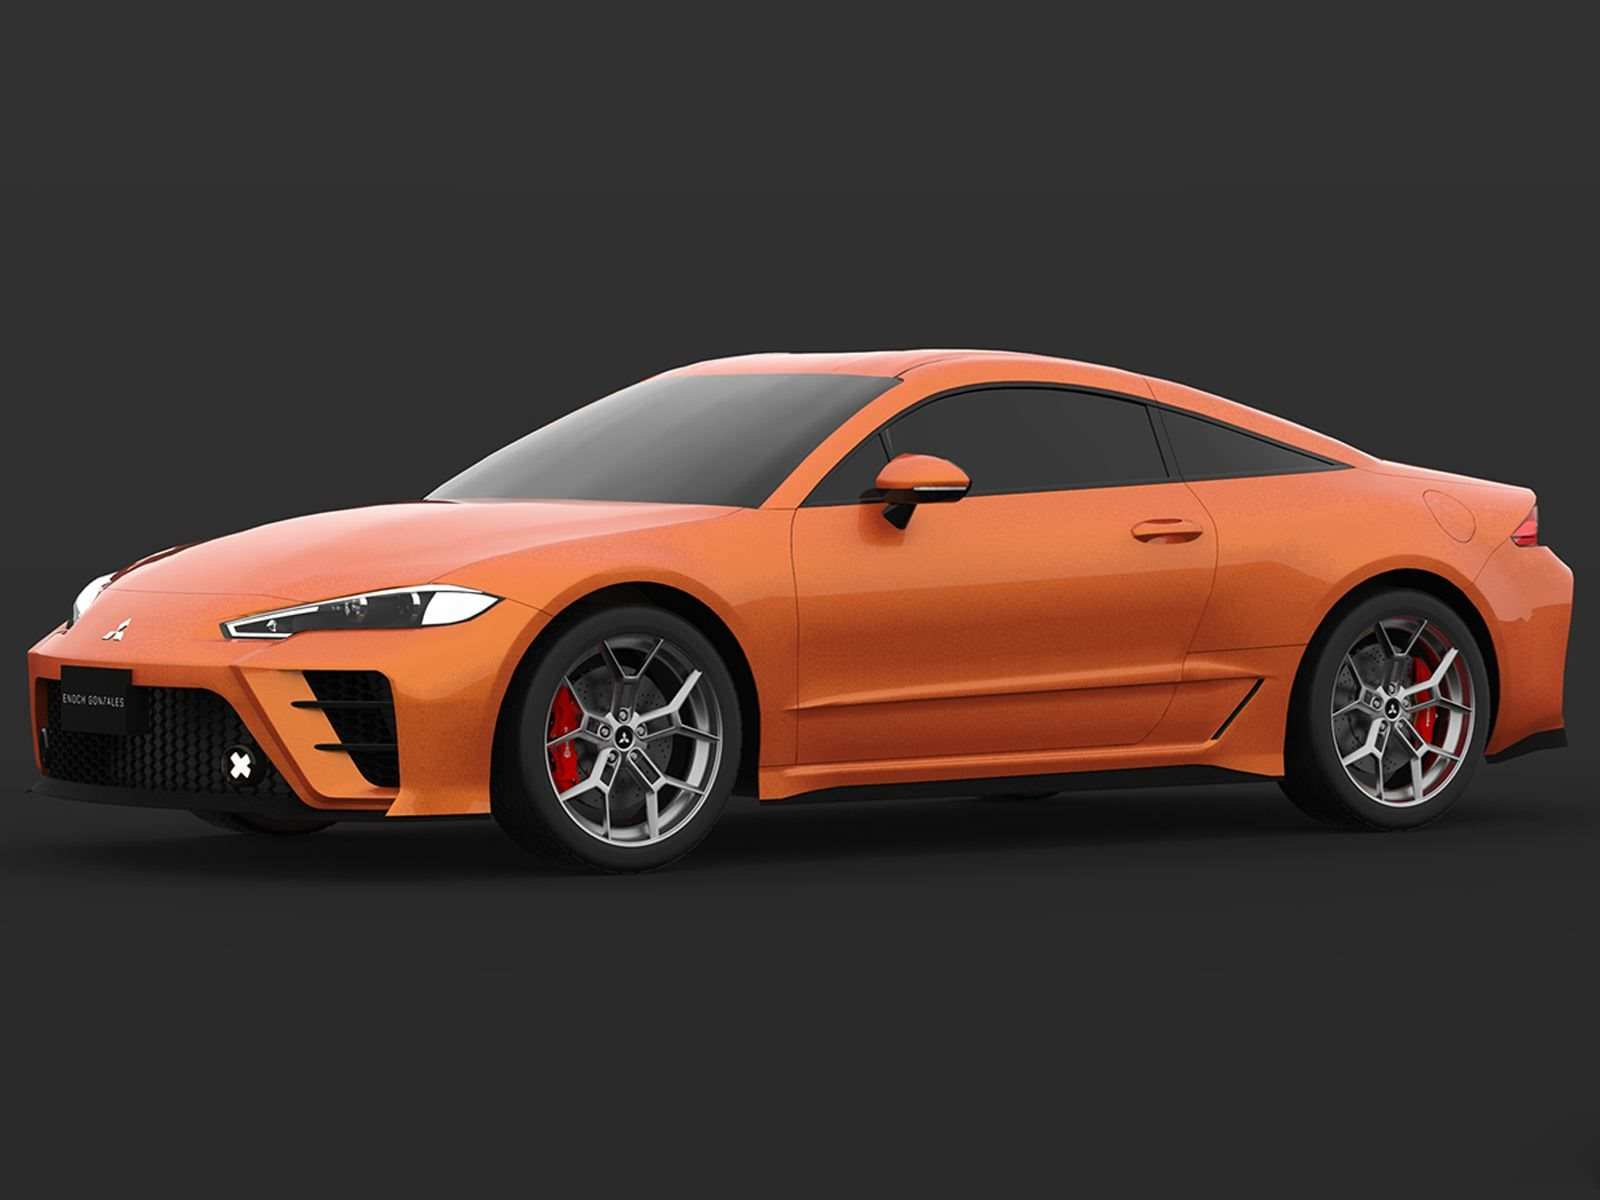 35 All New Mitsubishi Eclipse Coupe 2020 Price And Release Date